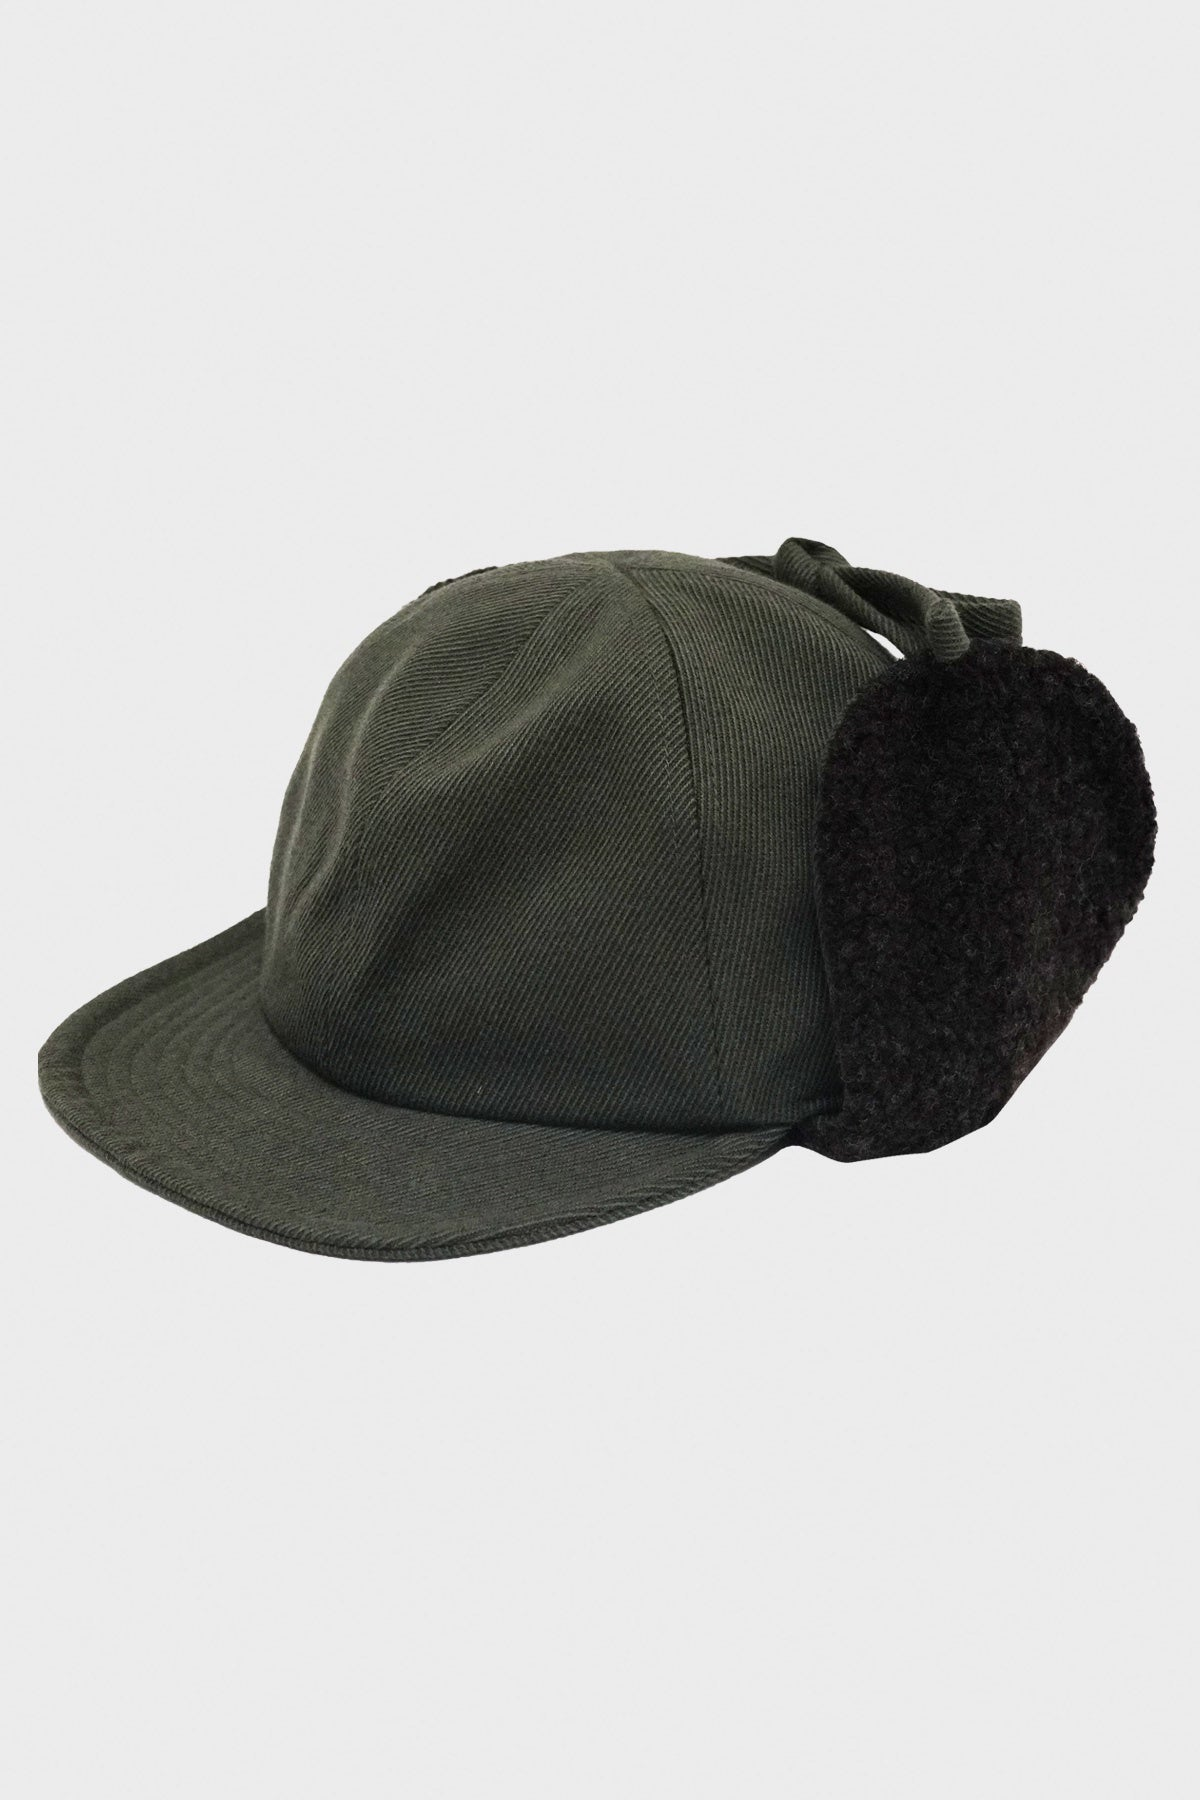 Beams Plus - 6 Panel Boa Cap - Olive - Canoe Club